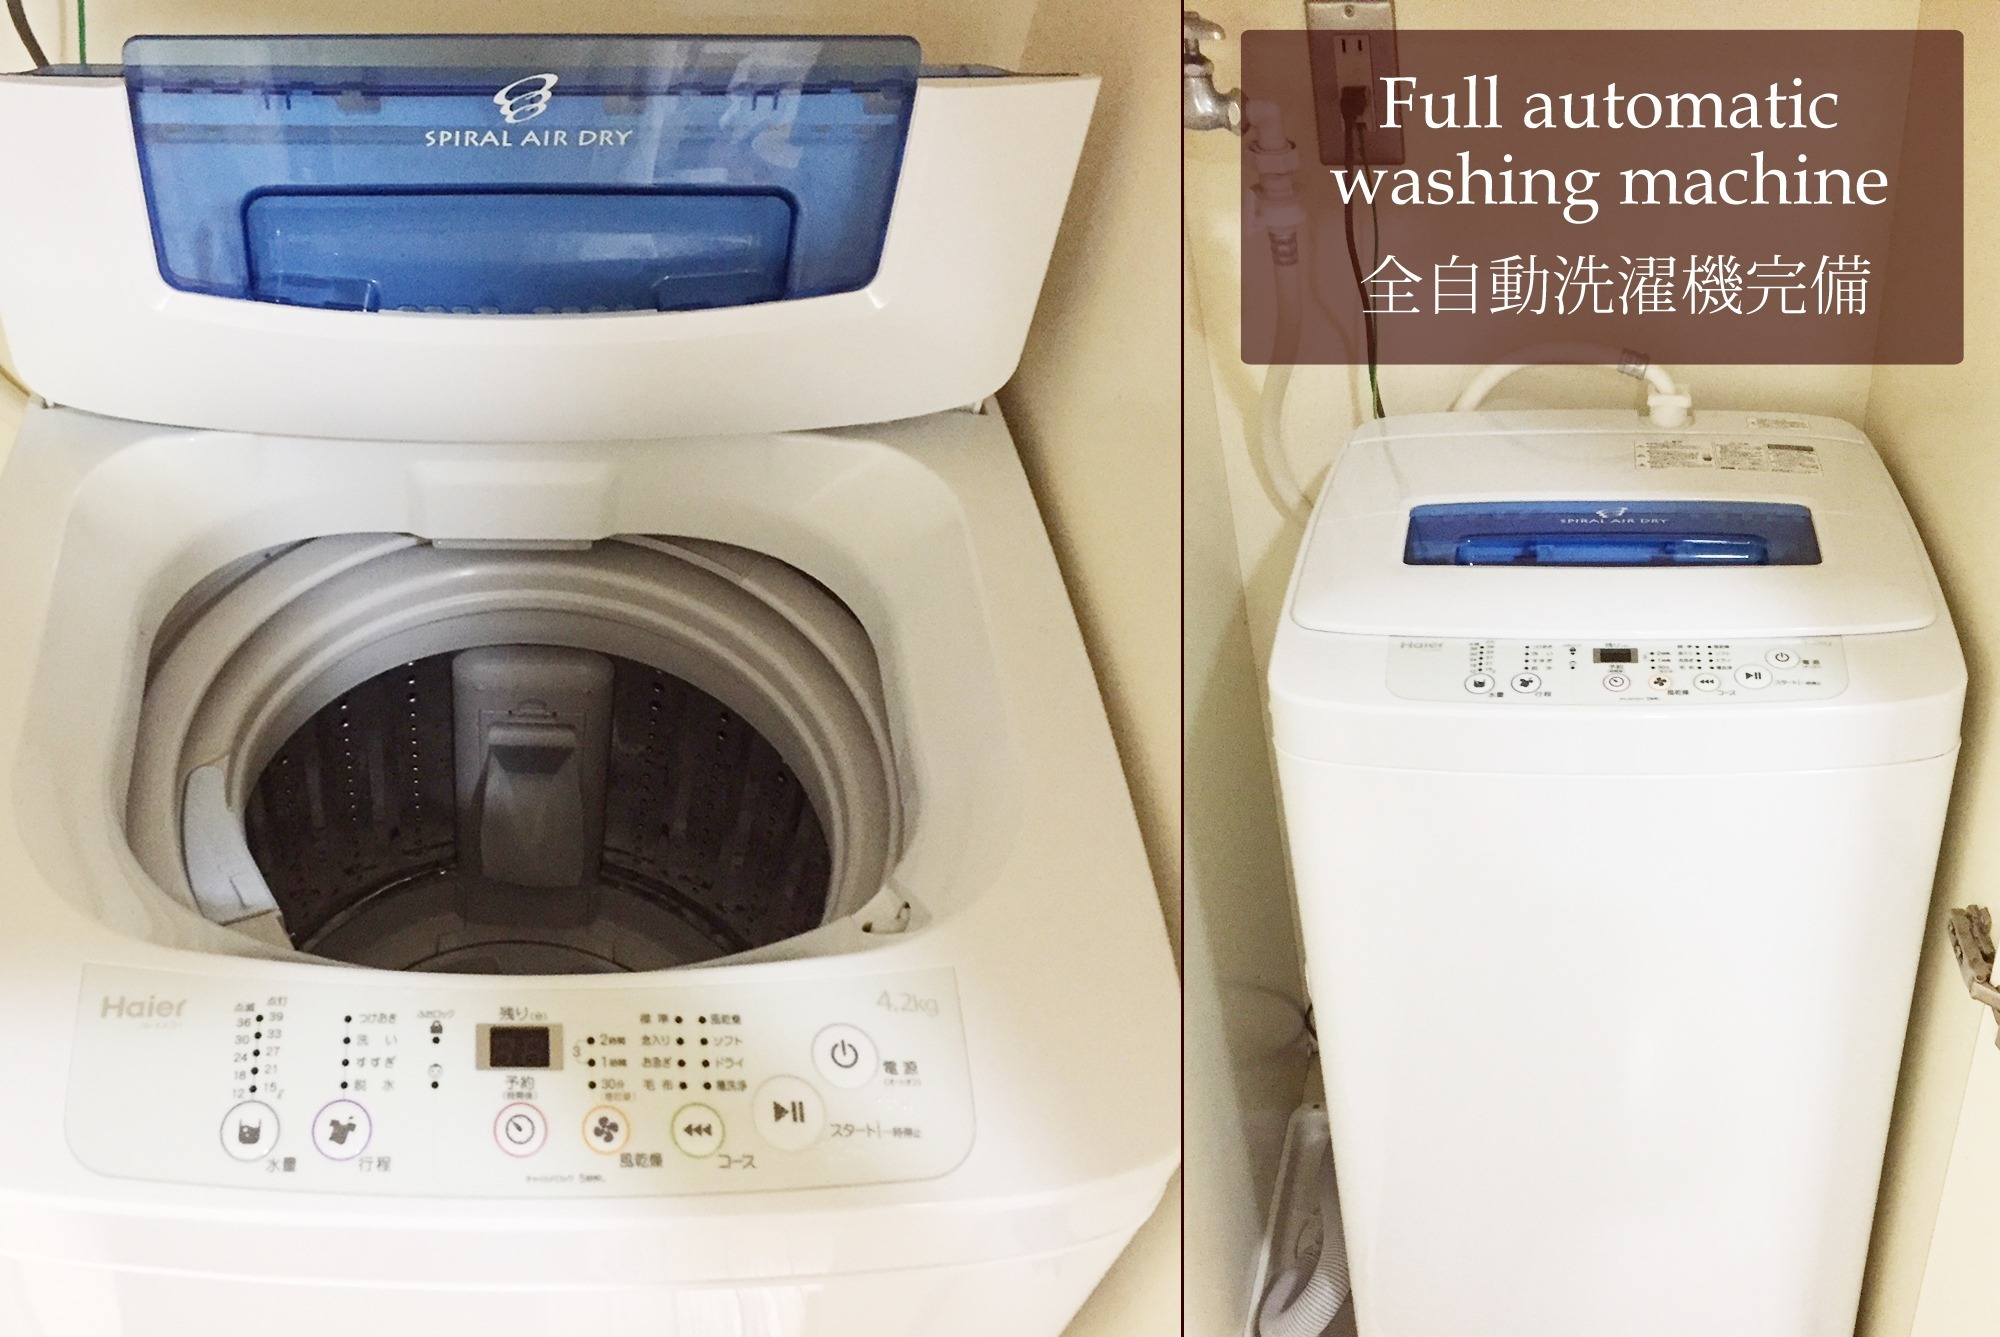 Full automatic Washing machine,If you need a dryer, there is a Coin-operated laundromat in 4 minutes on foot.